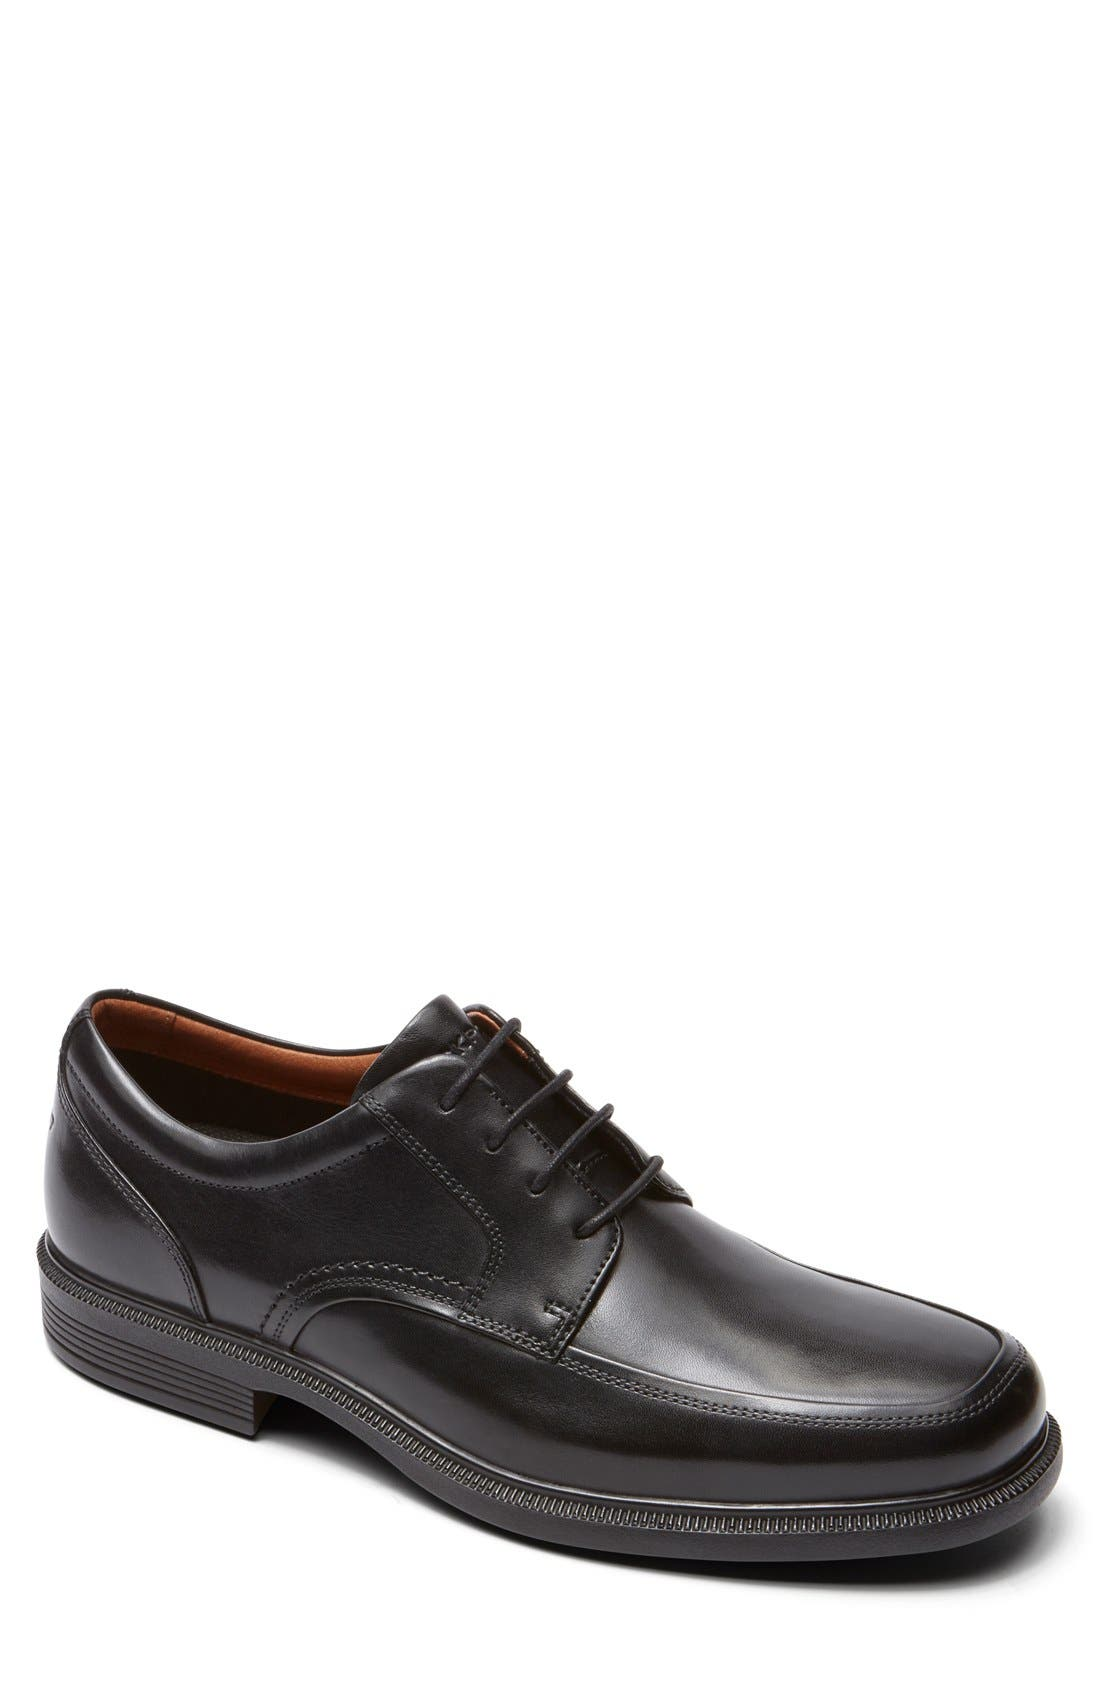 ROCKPORT DresSports Luxe Apron Toe Derby